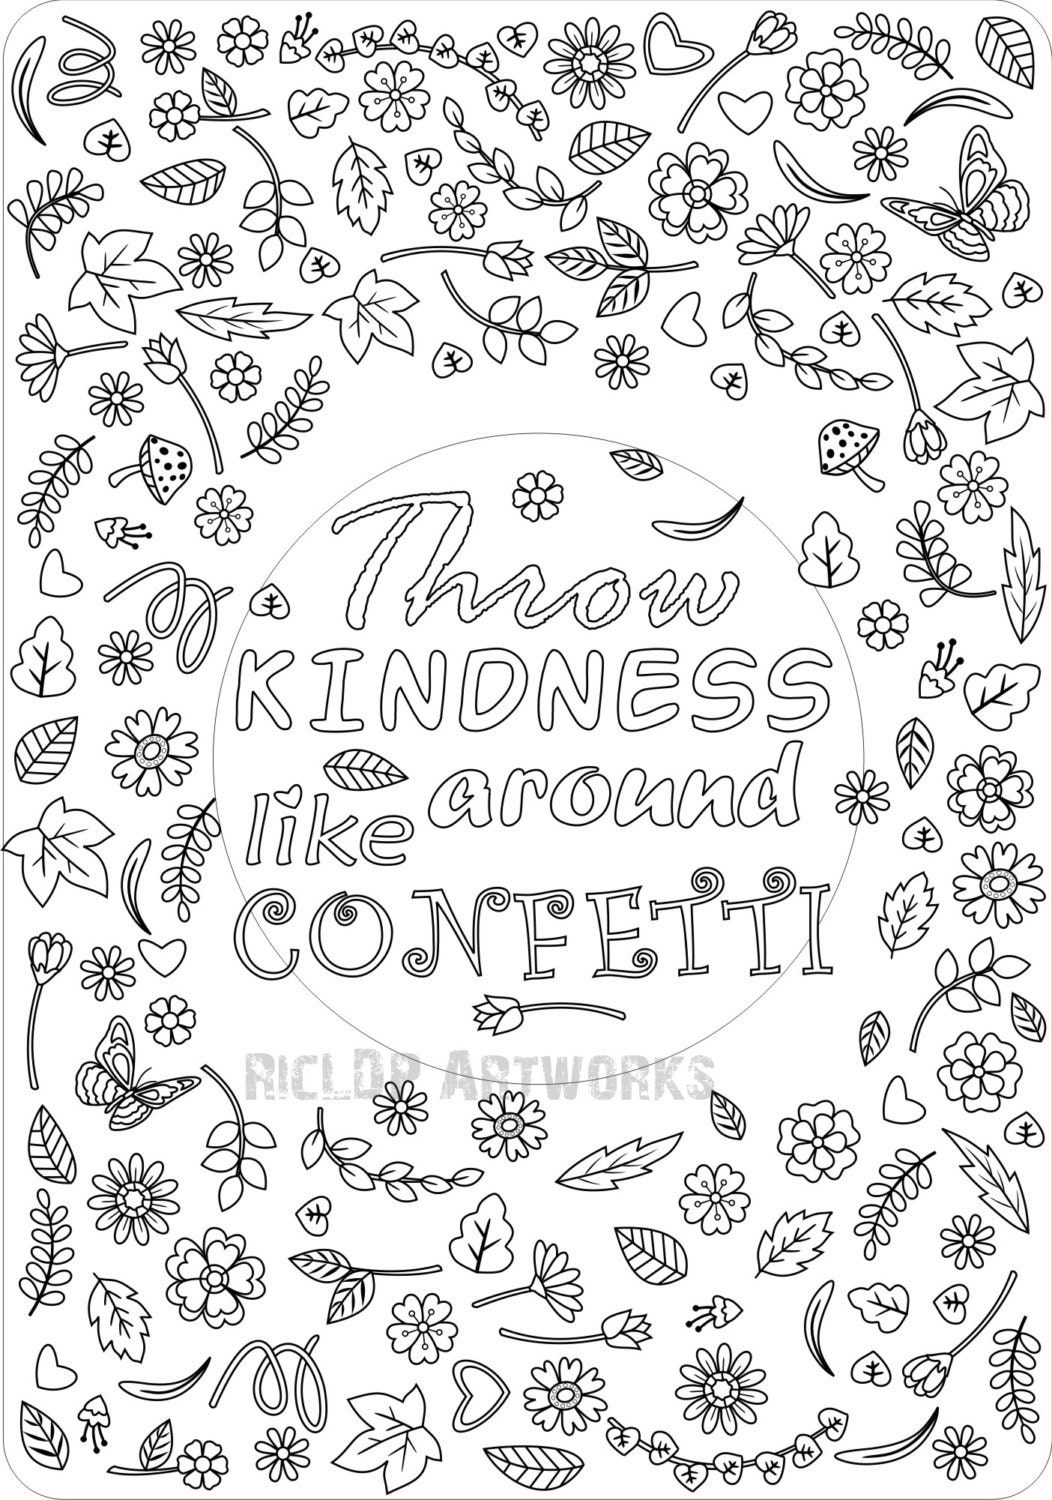 Showing Kindness To Others Coloring